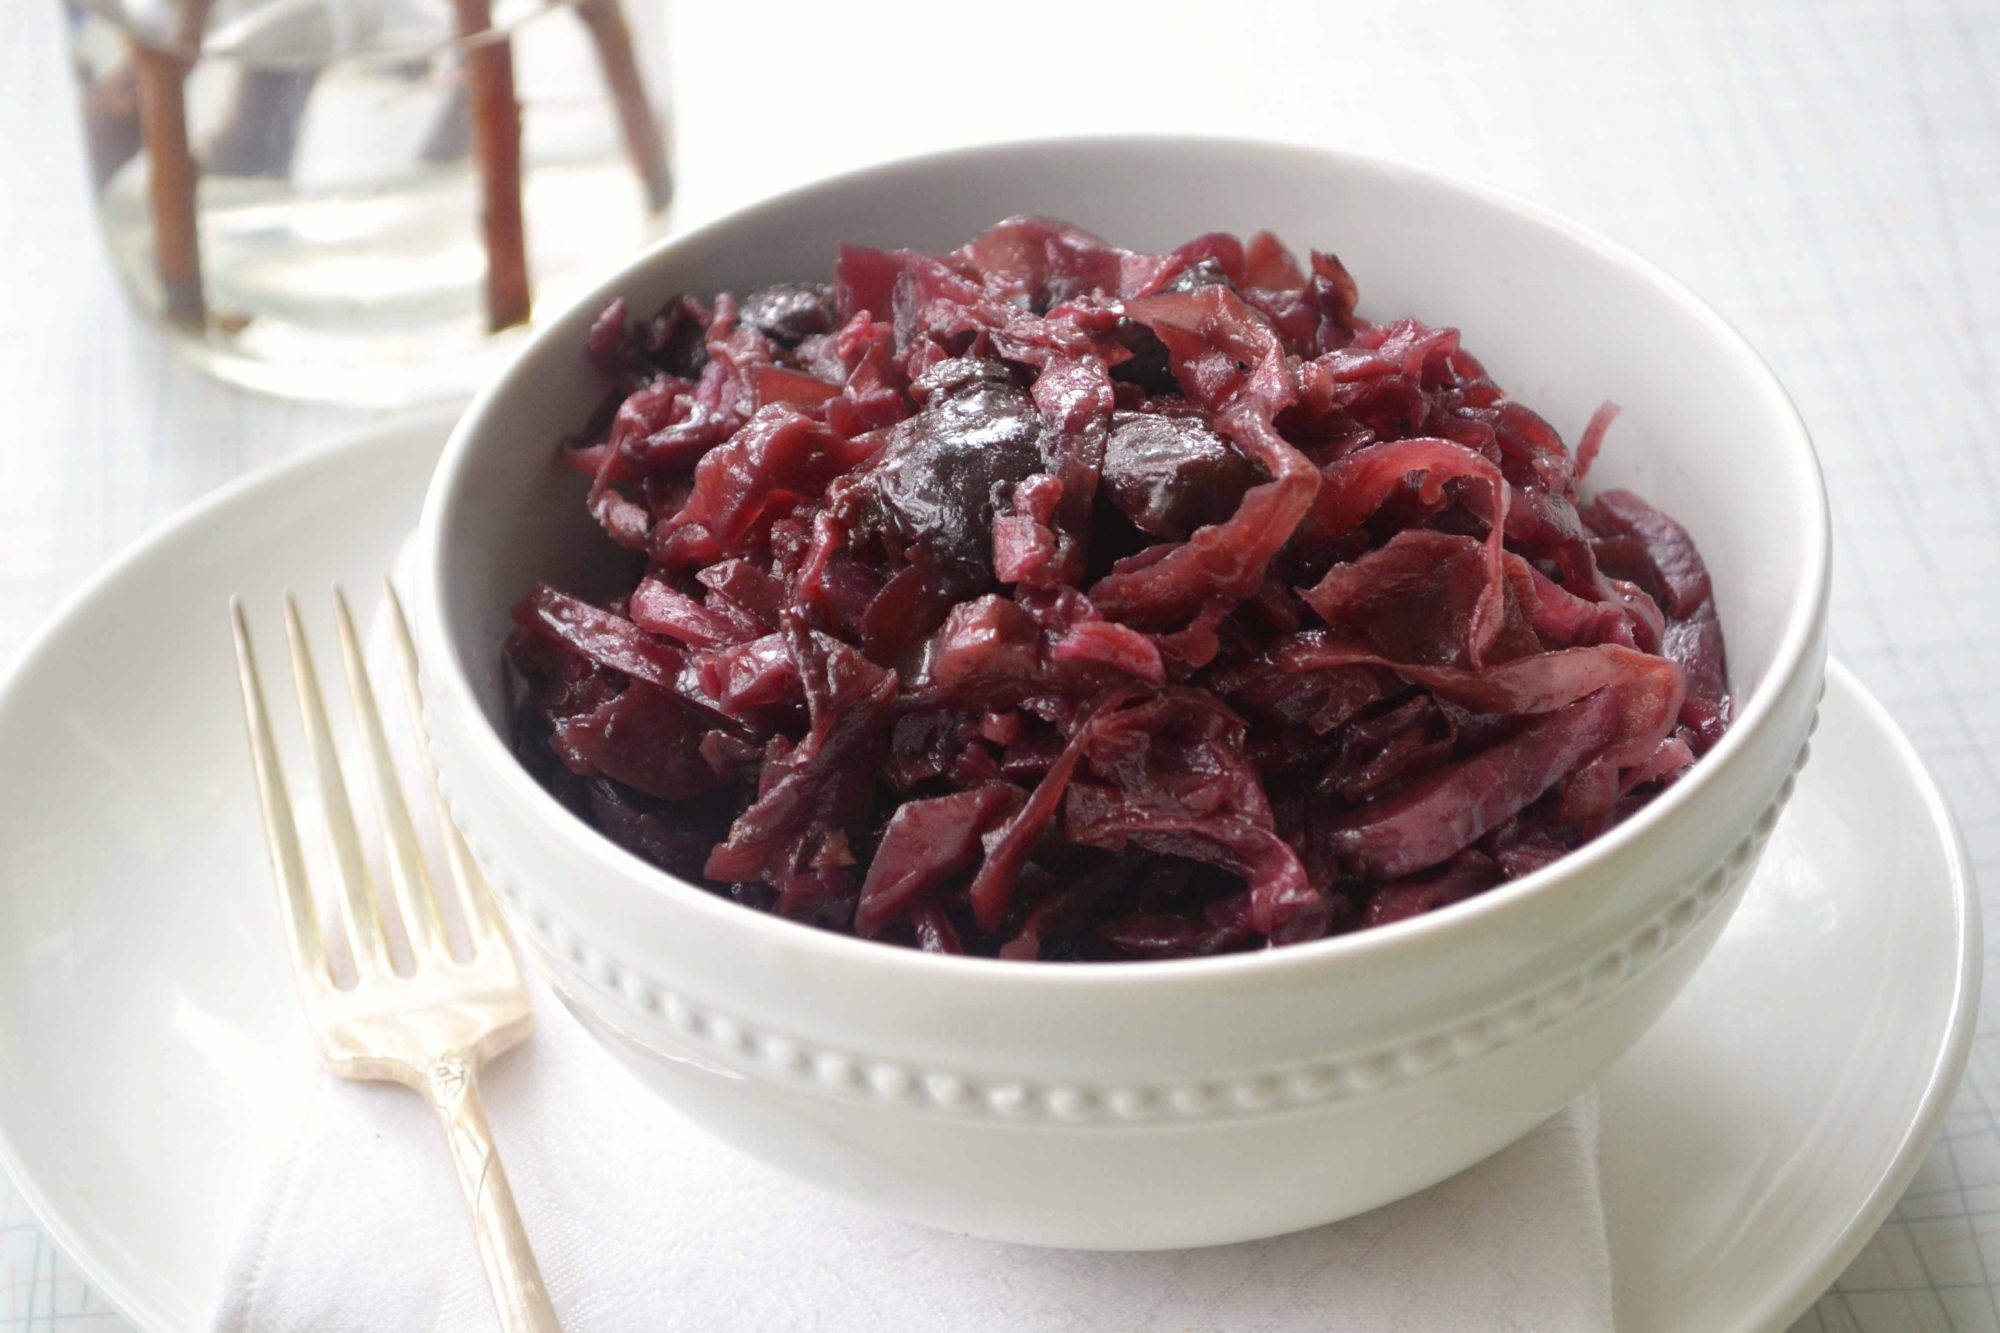 Braised red cabbage cherries 2 Braised Red Cabbage & Cherries